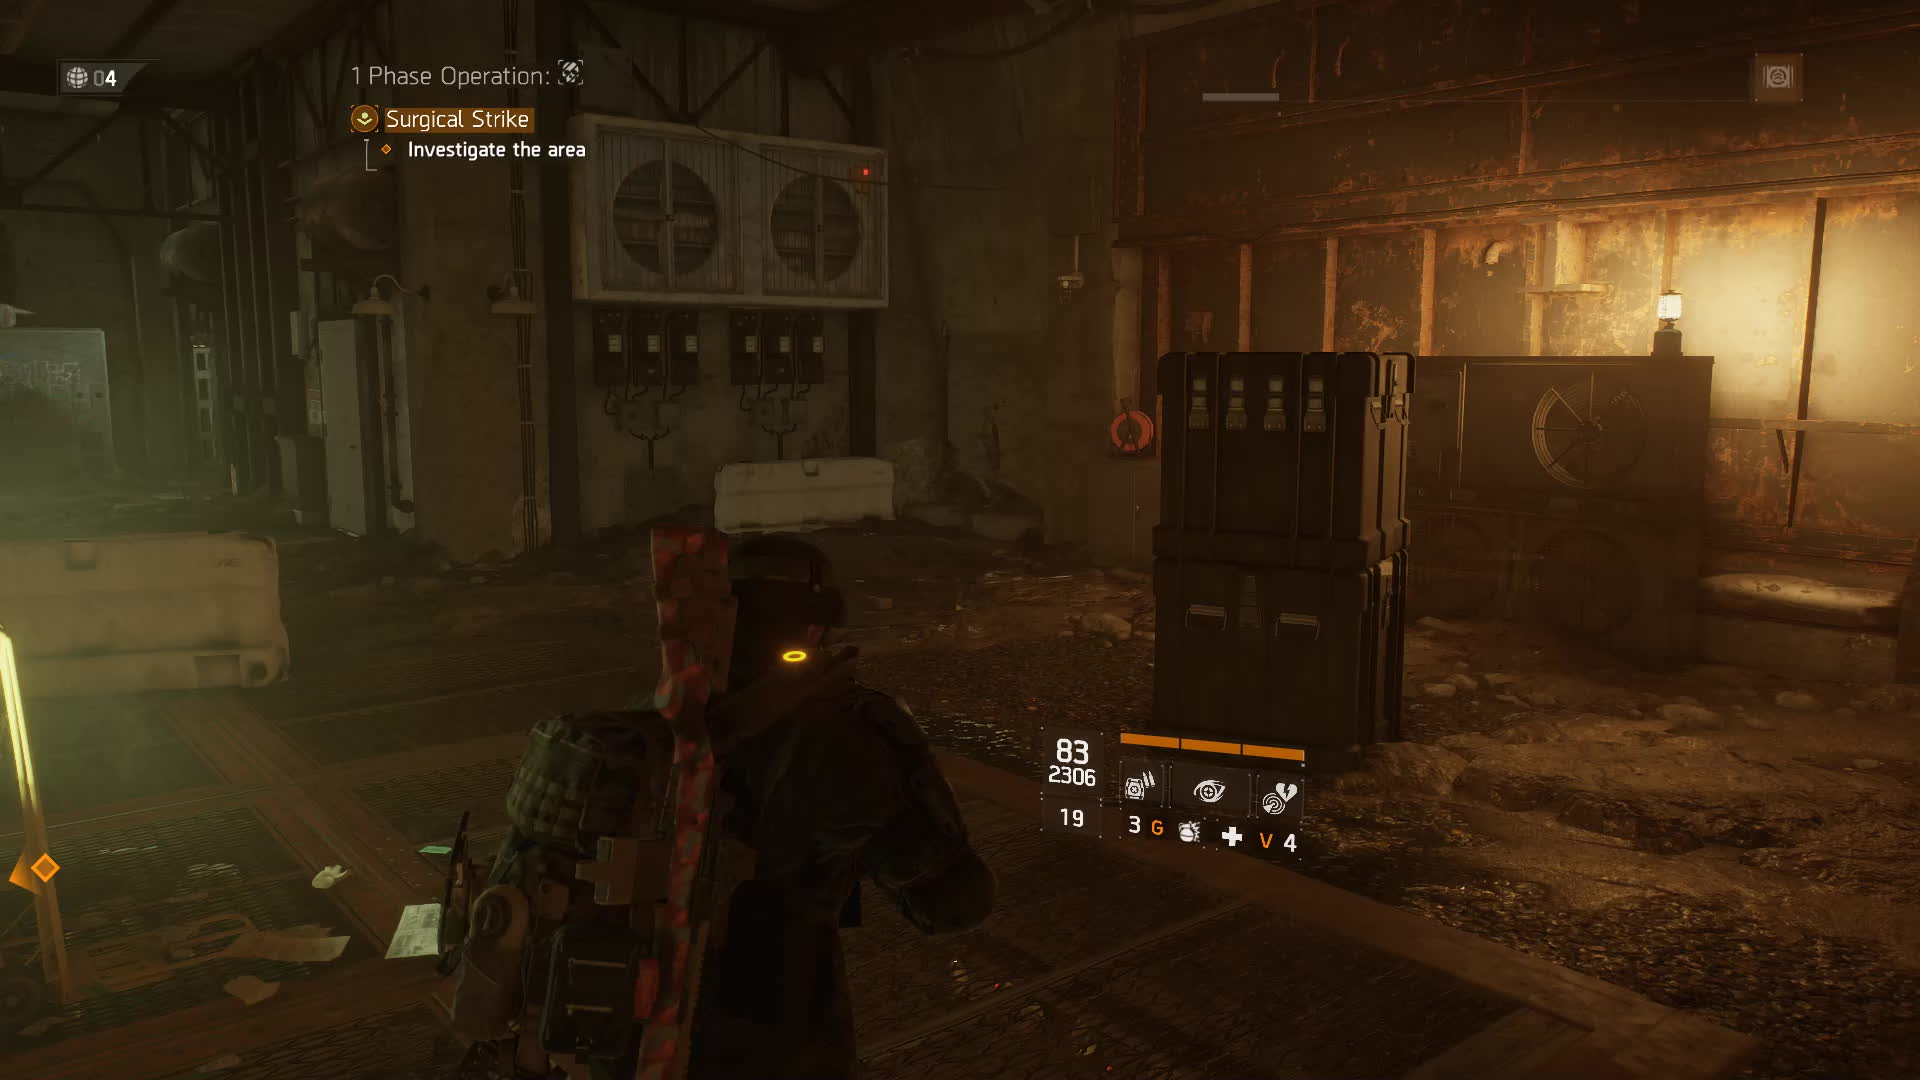 thedivision, What is that? GIFs